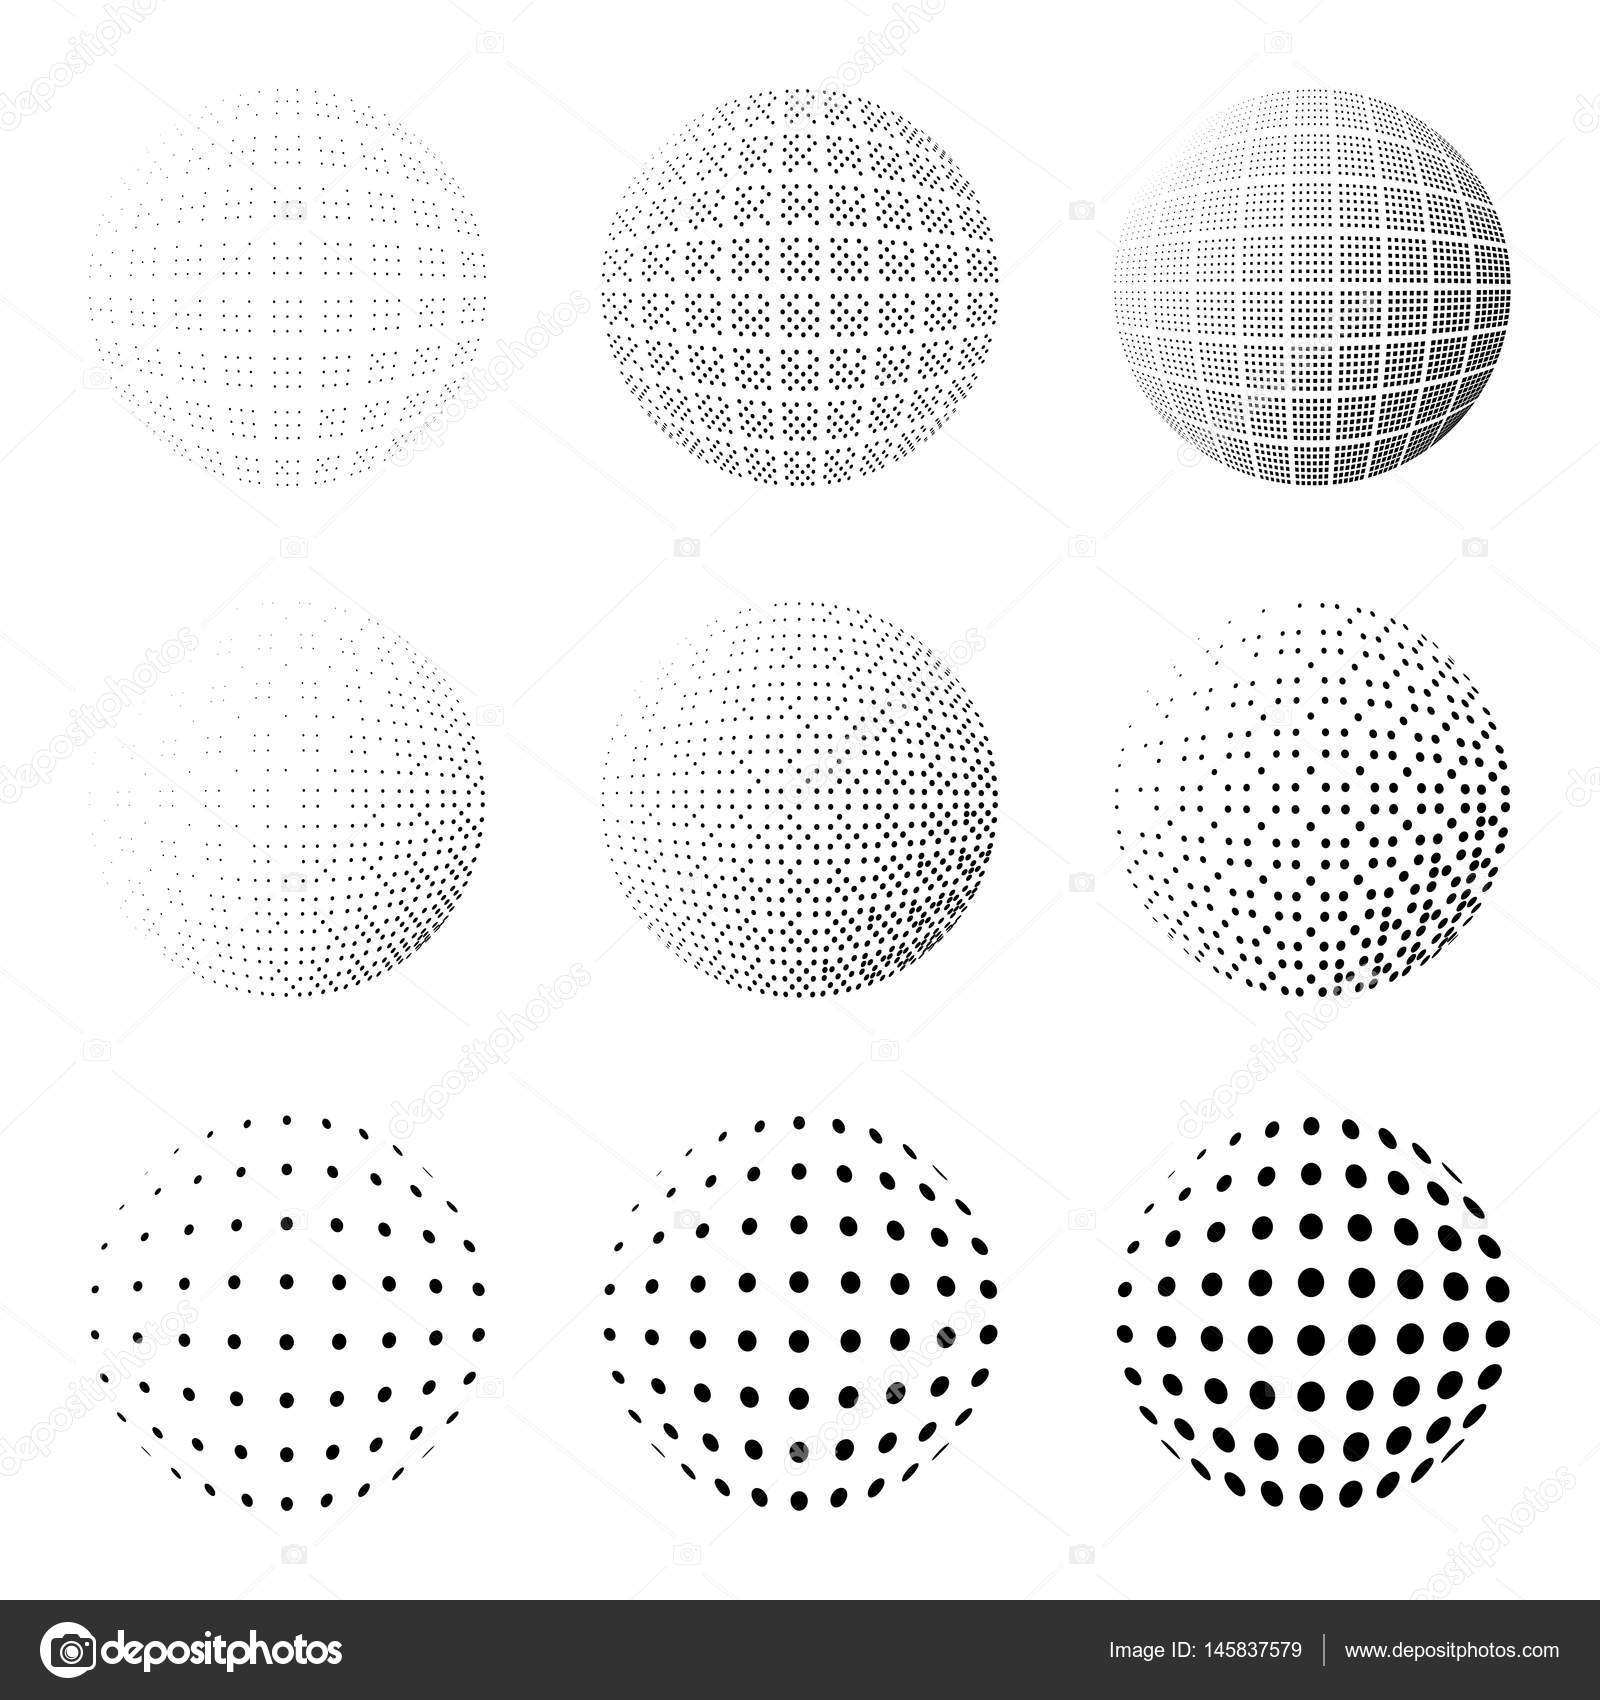 Set of halftone circles isolated on the white backgroundllection collection of halftone effect dot patternssphere illustrationabstract business symbolrcular vector logo for your designolated black icon buycottarizona Image collections